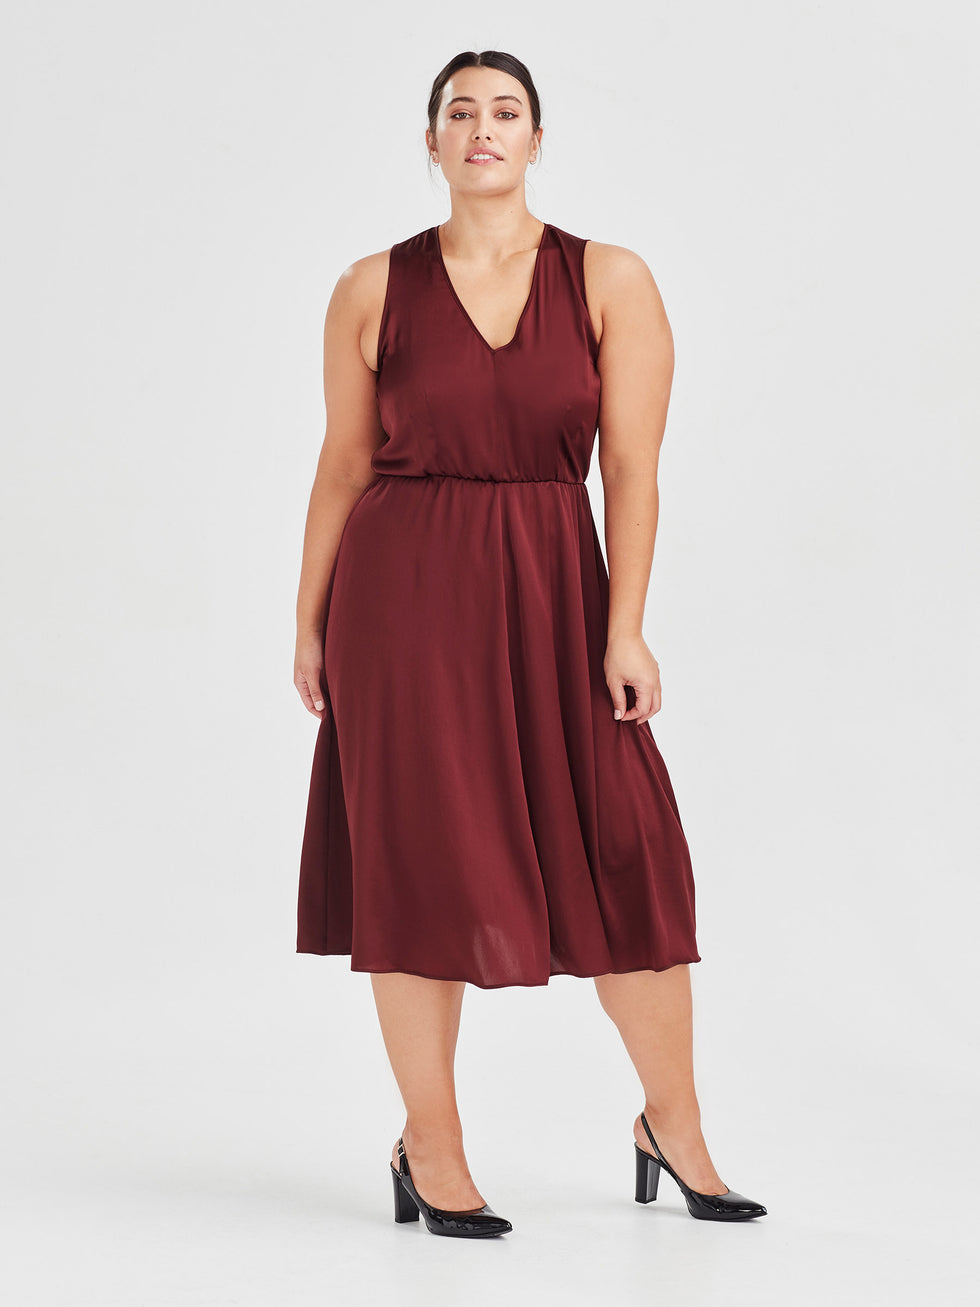 Fleur Dress (Satin Triacetate) Wine 1